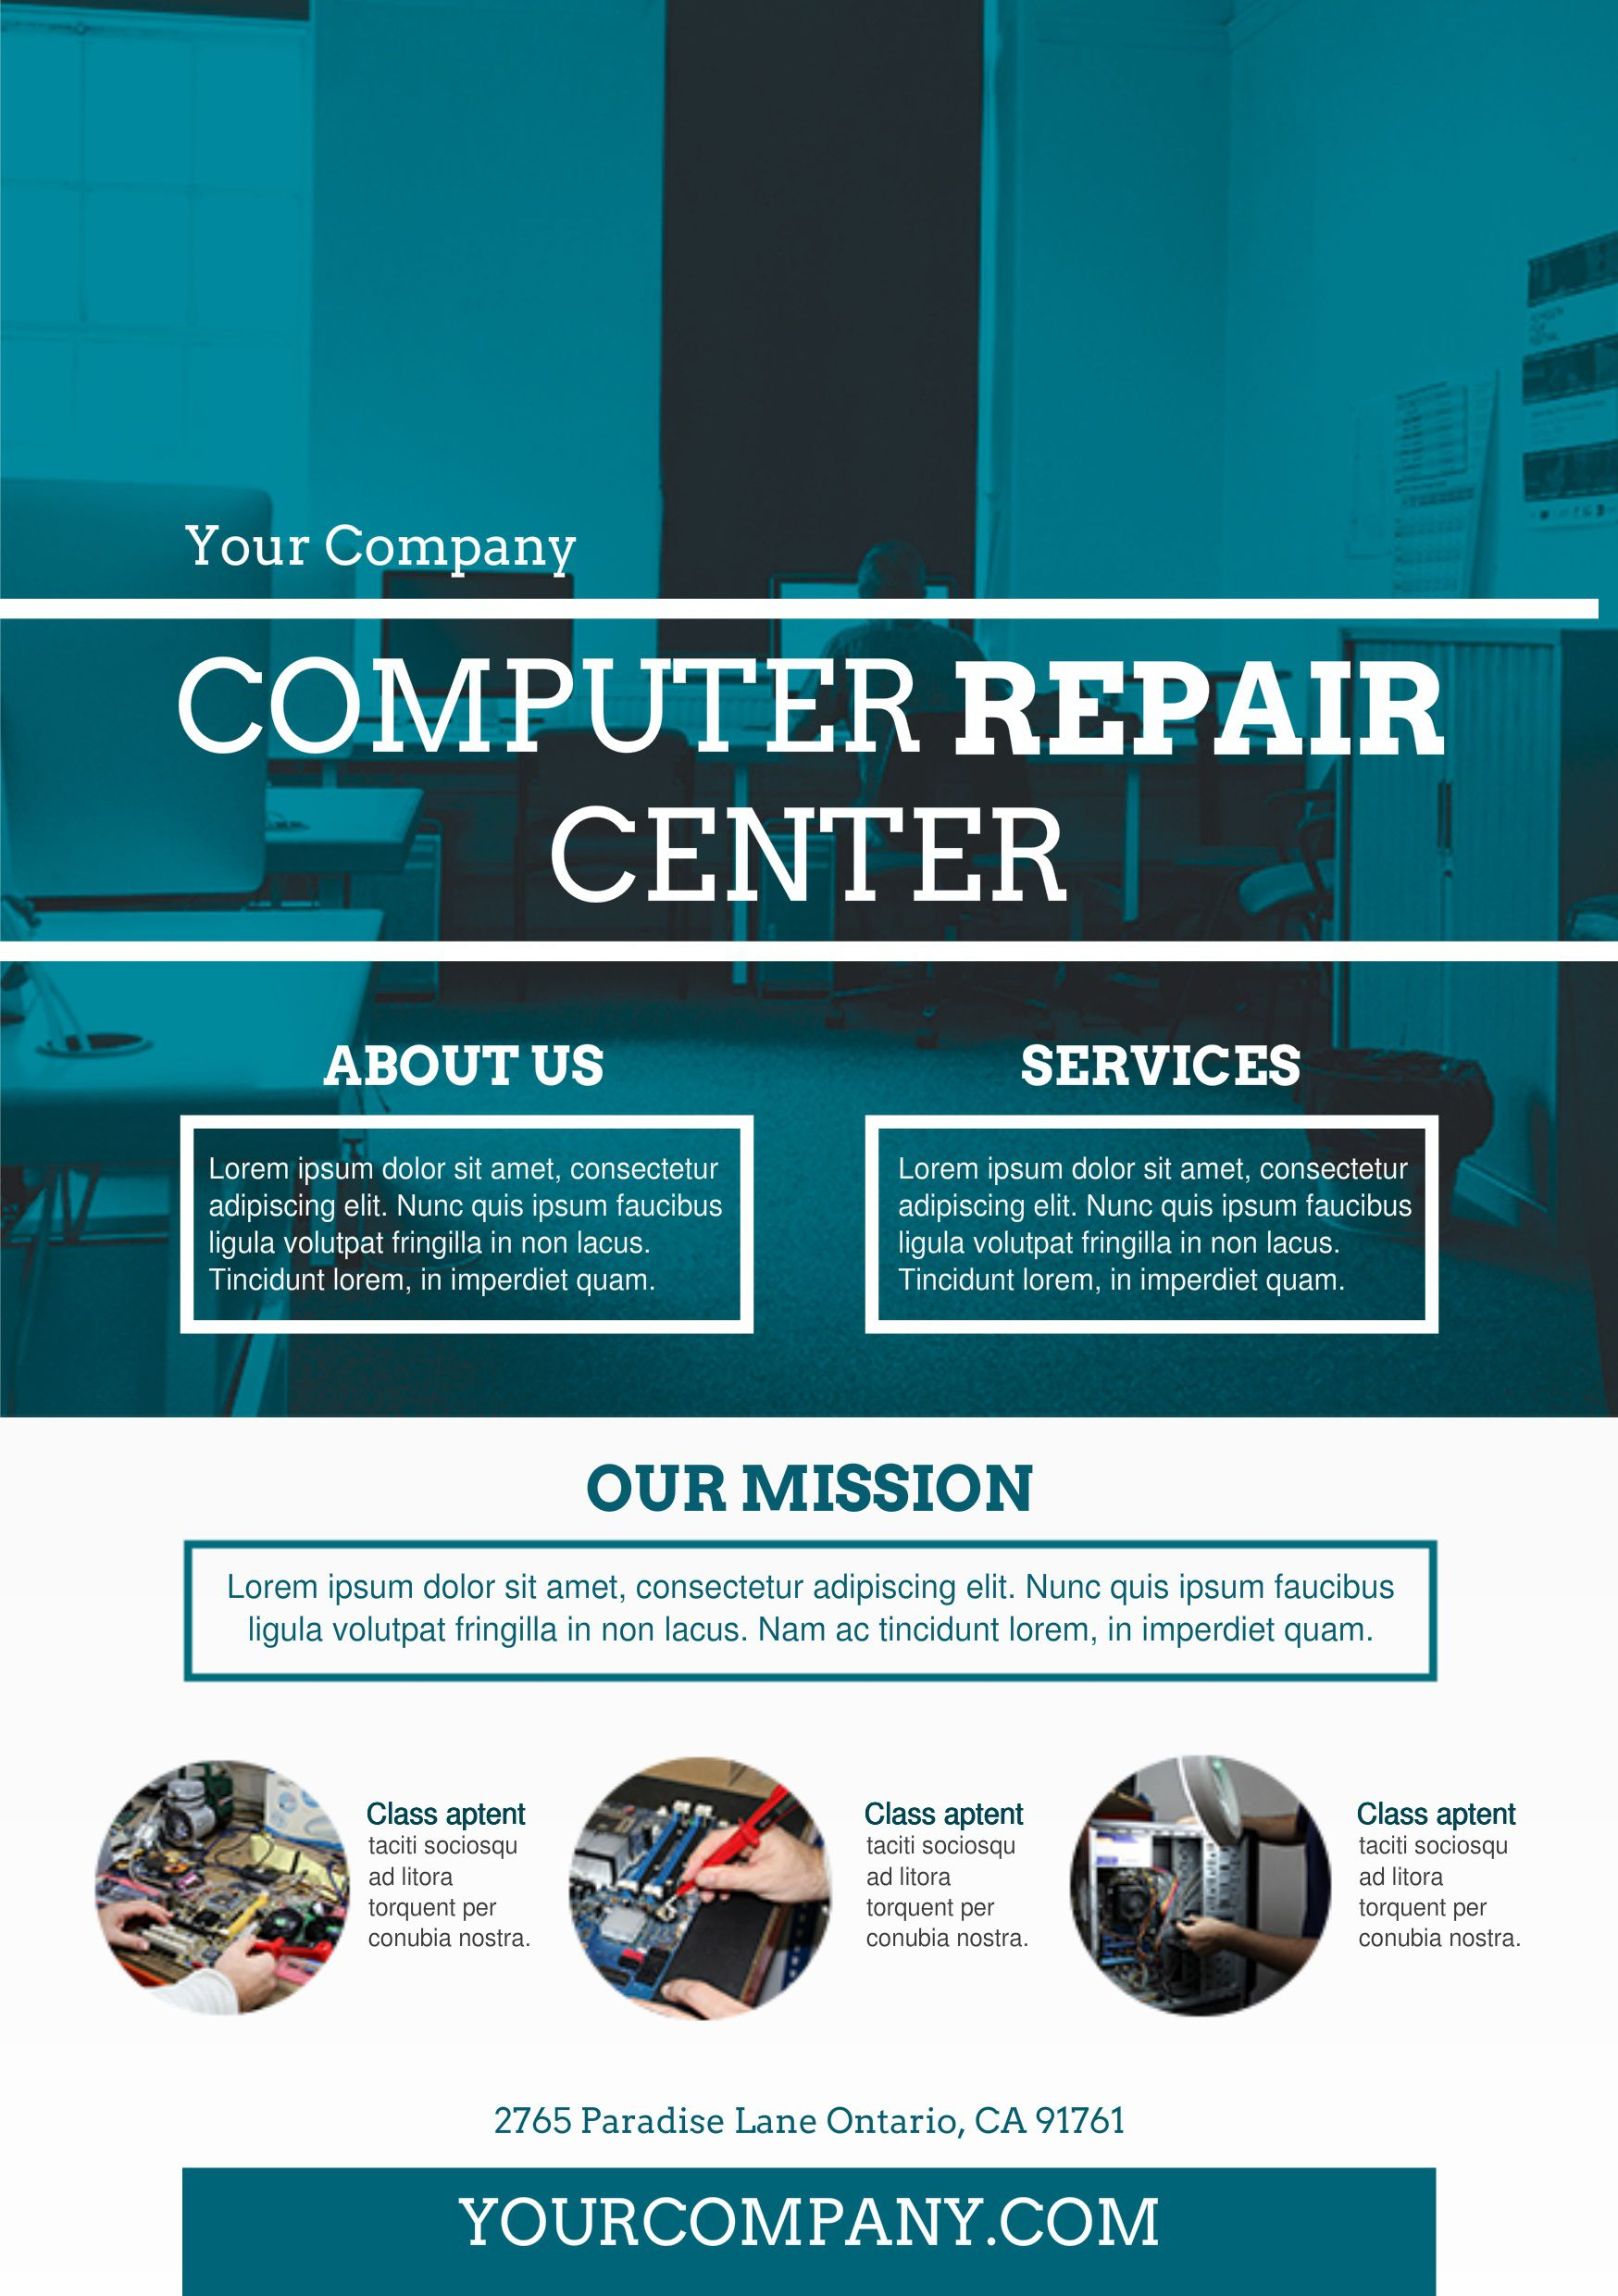 002 Awful Computer Repair Flyer Template High Resolution  Word Busines FreeFull